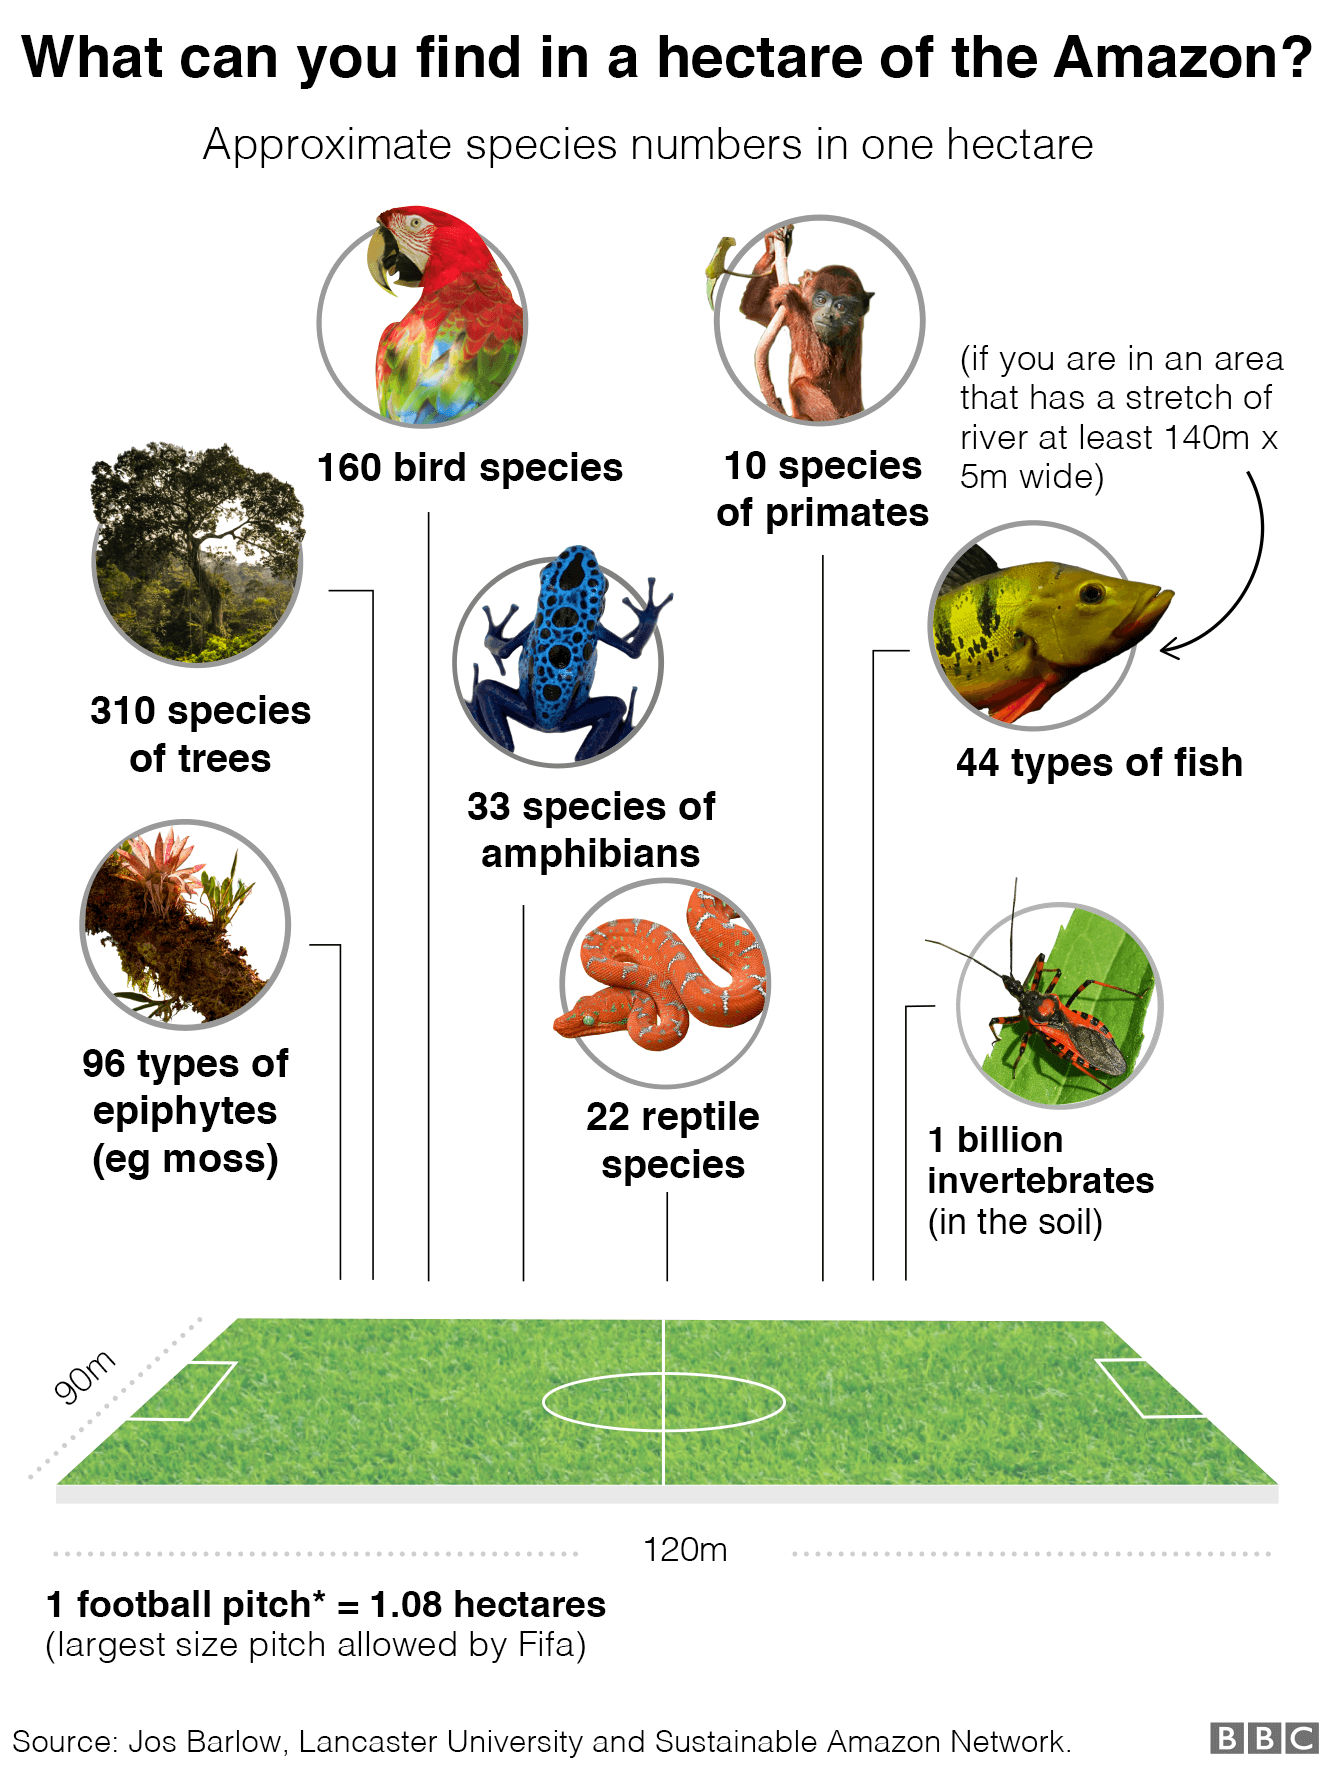 Graphic showing the species it is possible to find in one hectare of the Amazon: 160 bird species, 10 primate species, 44 types of fish if you are in an area that has a stretch of river at least 140m by 5m wide, 33 species of amphibians, 22 reptile species, 96 types of epiphytes (eg moss) and 310 species of trees